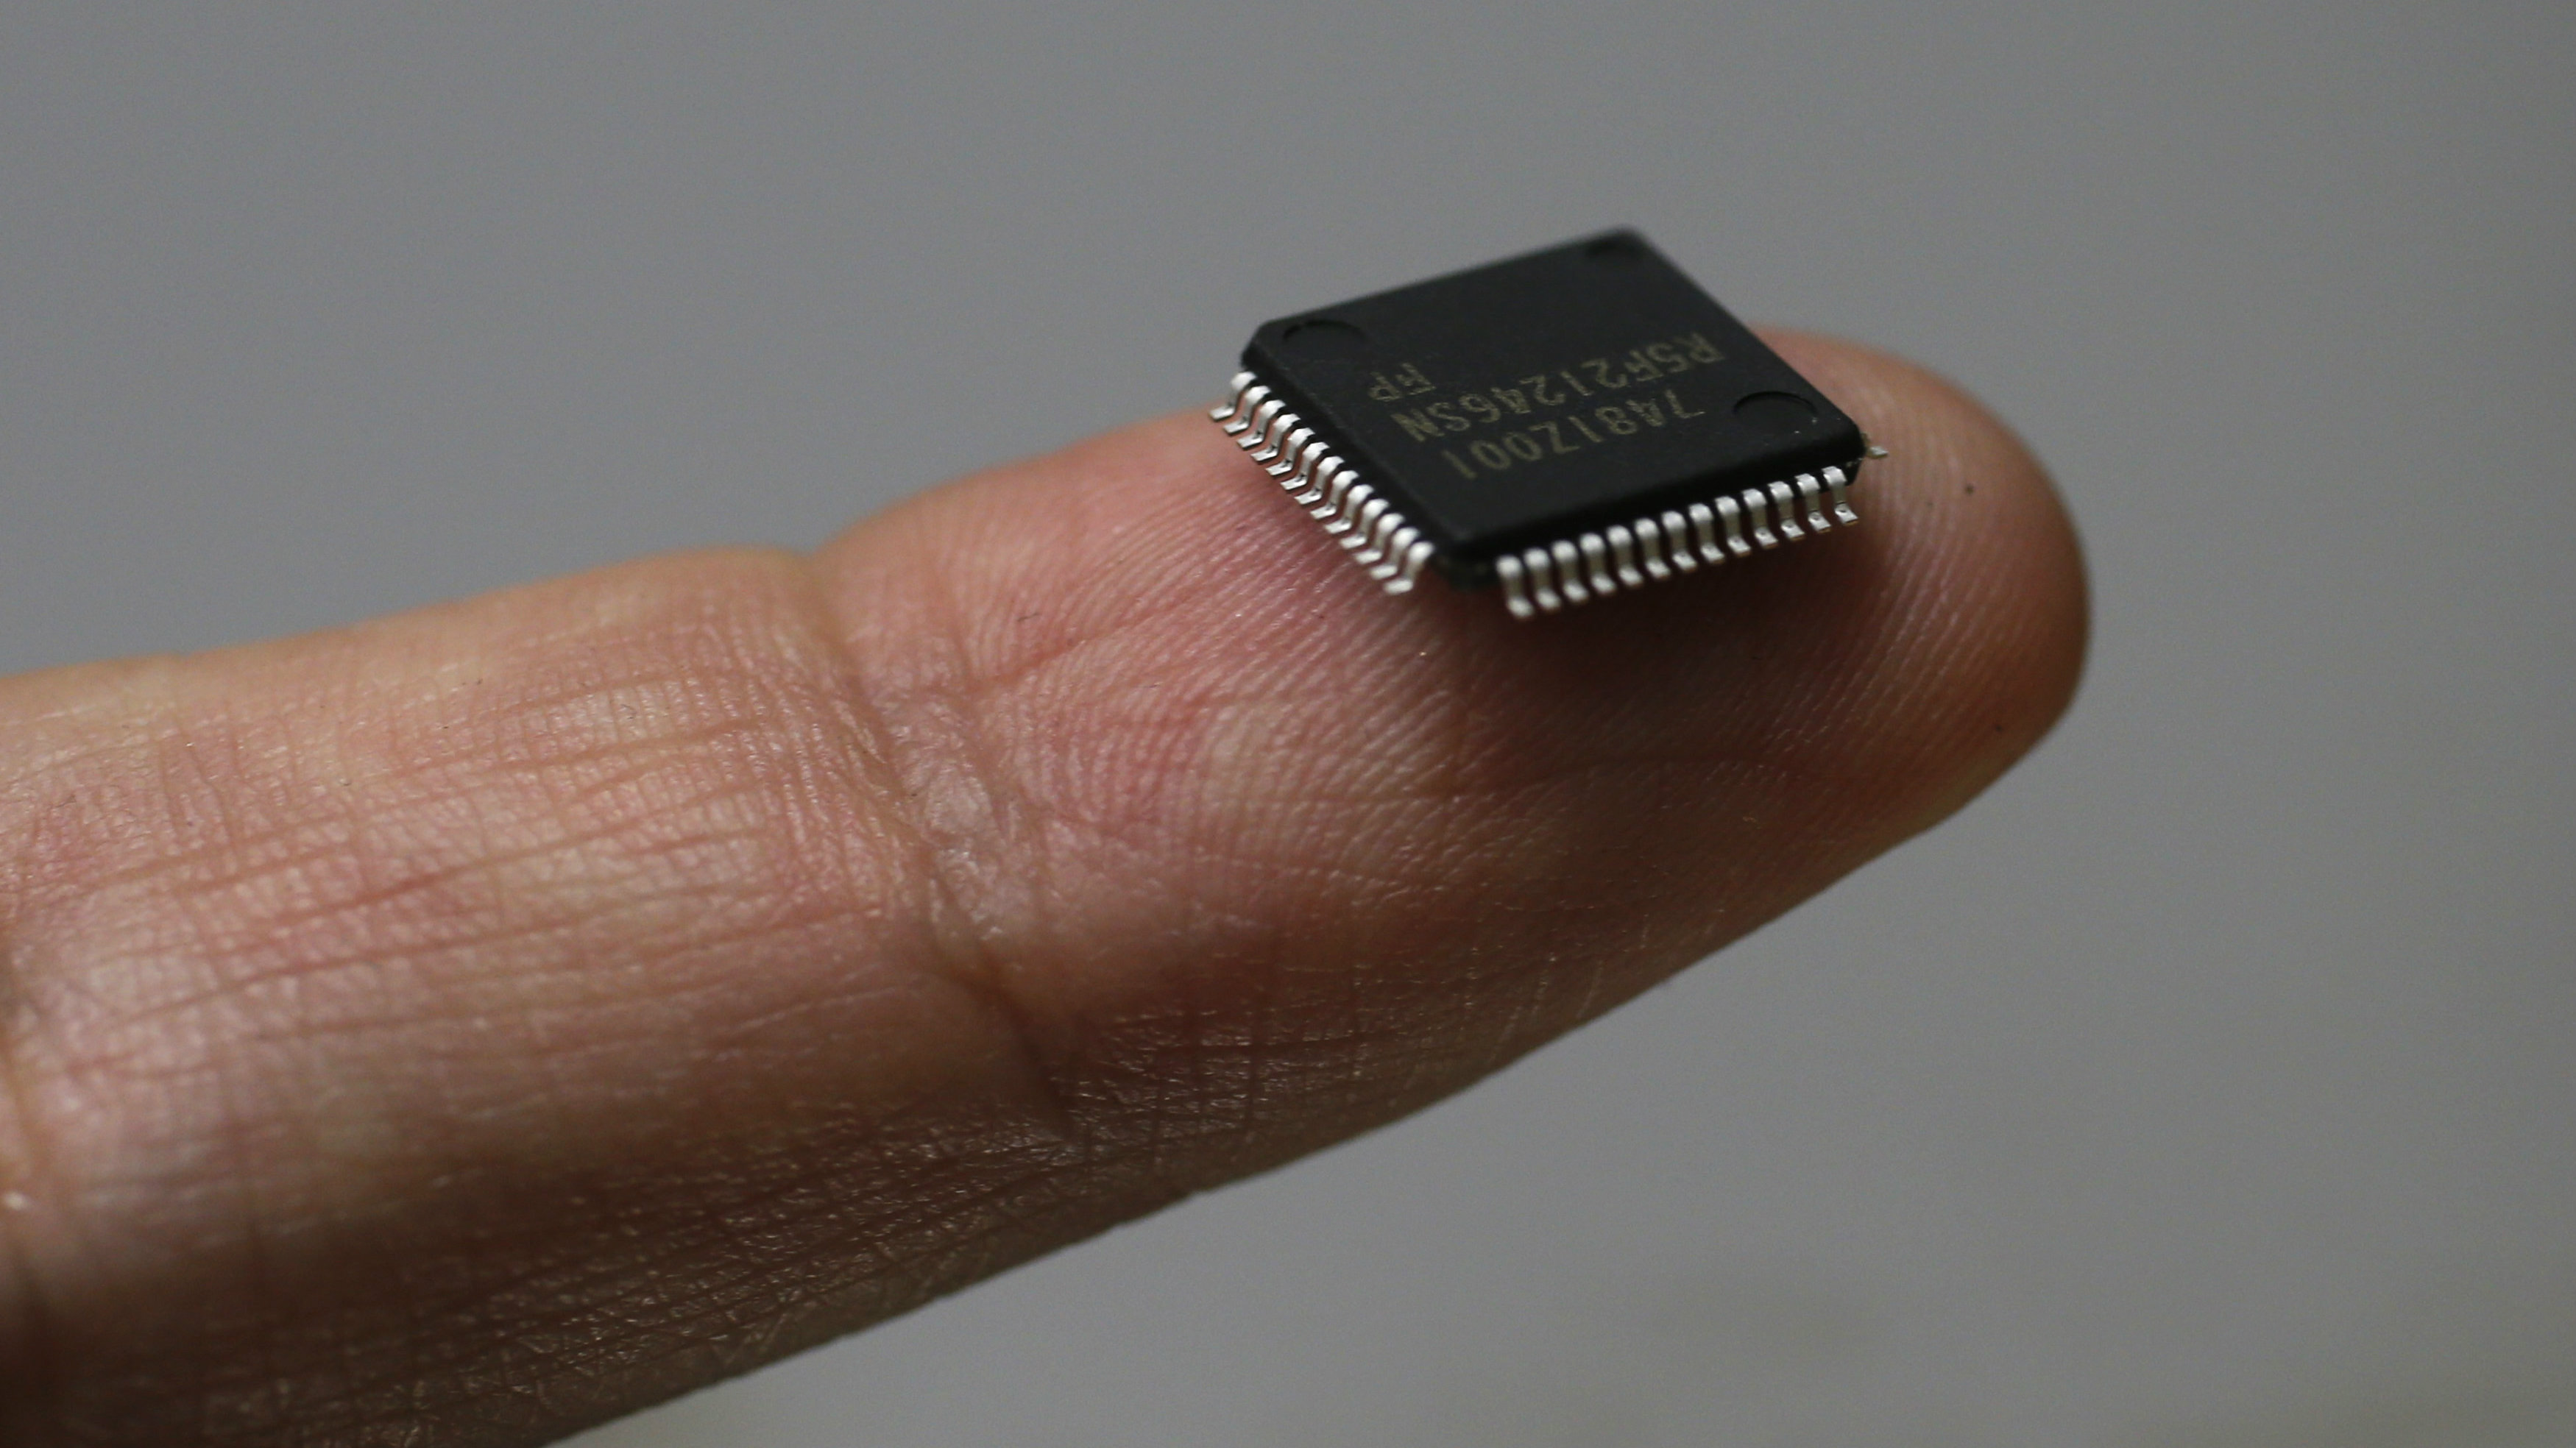 A Renesas Electronics Corp's microcontroller chip sits on a finger in this illustrative photograph taken in Tokyo May 24, 2012. Japan's loss-making Renesas Electronics Corp said on Thursday it will tie up with Taiwan Semiconductor Manufacturing Co in the microchip business as it struggles to keep up with aggressive rivals like Samsung Electronics. REUTERS/Kim Kyung-Hoon (JAPAN - Tags: BUSINESS SCIENCE TECHNOLOGY)